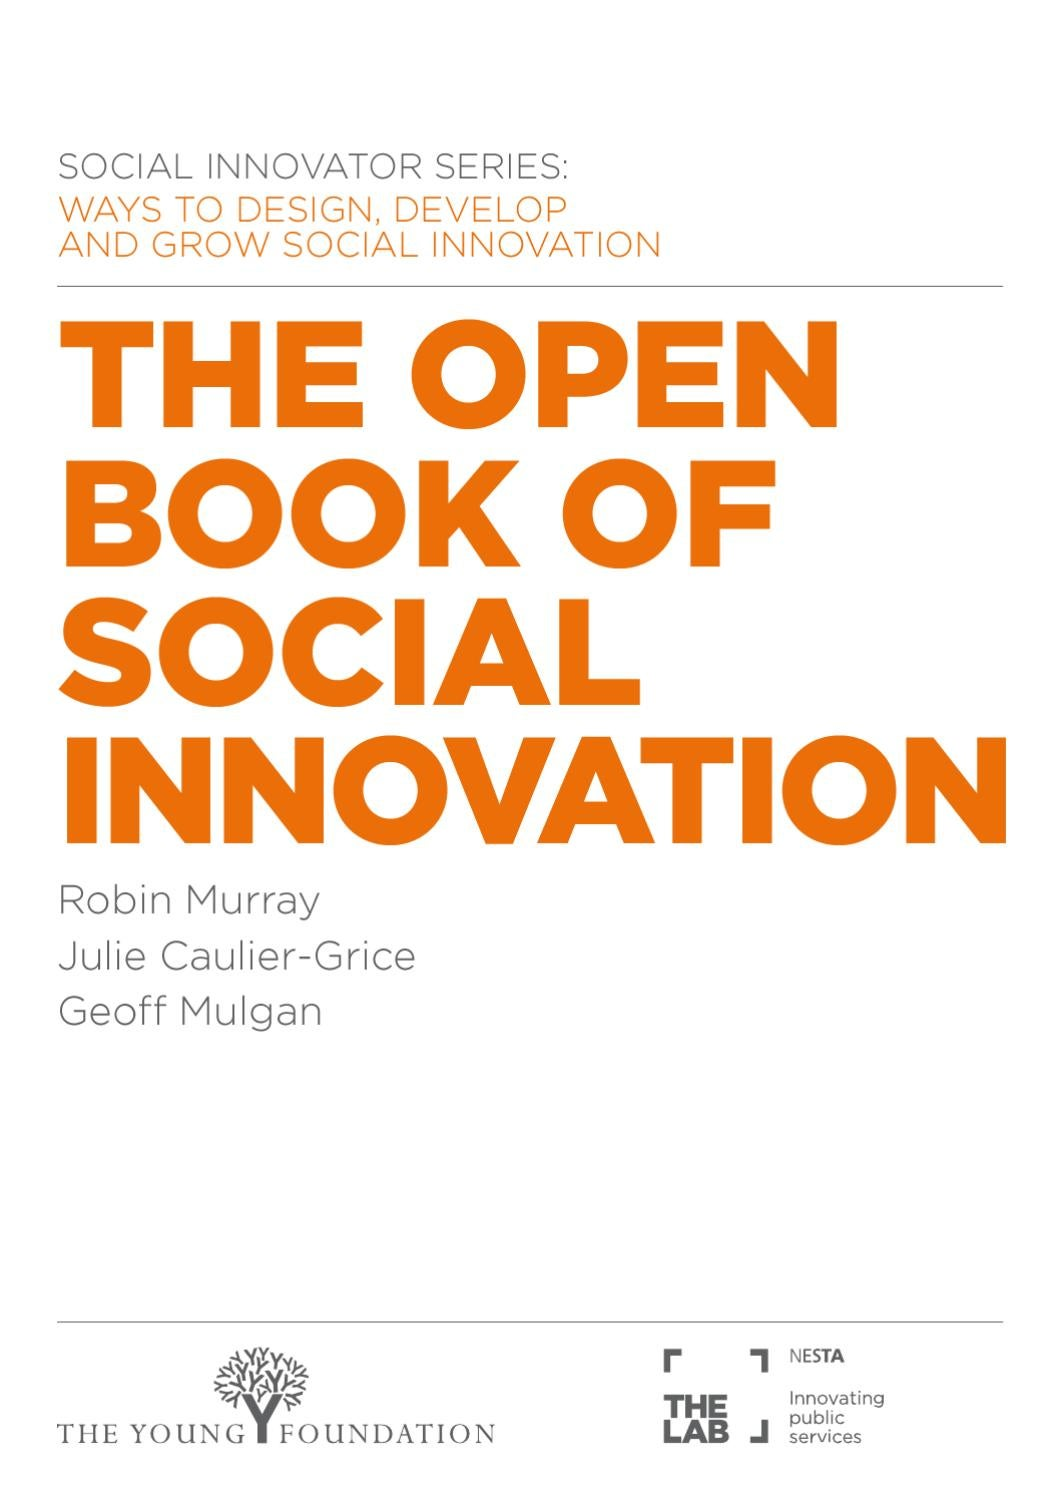 Theology foundations of social science